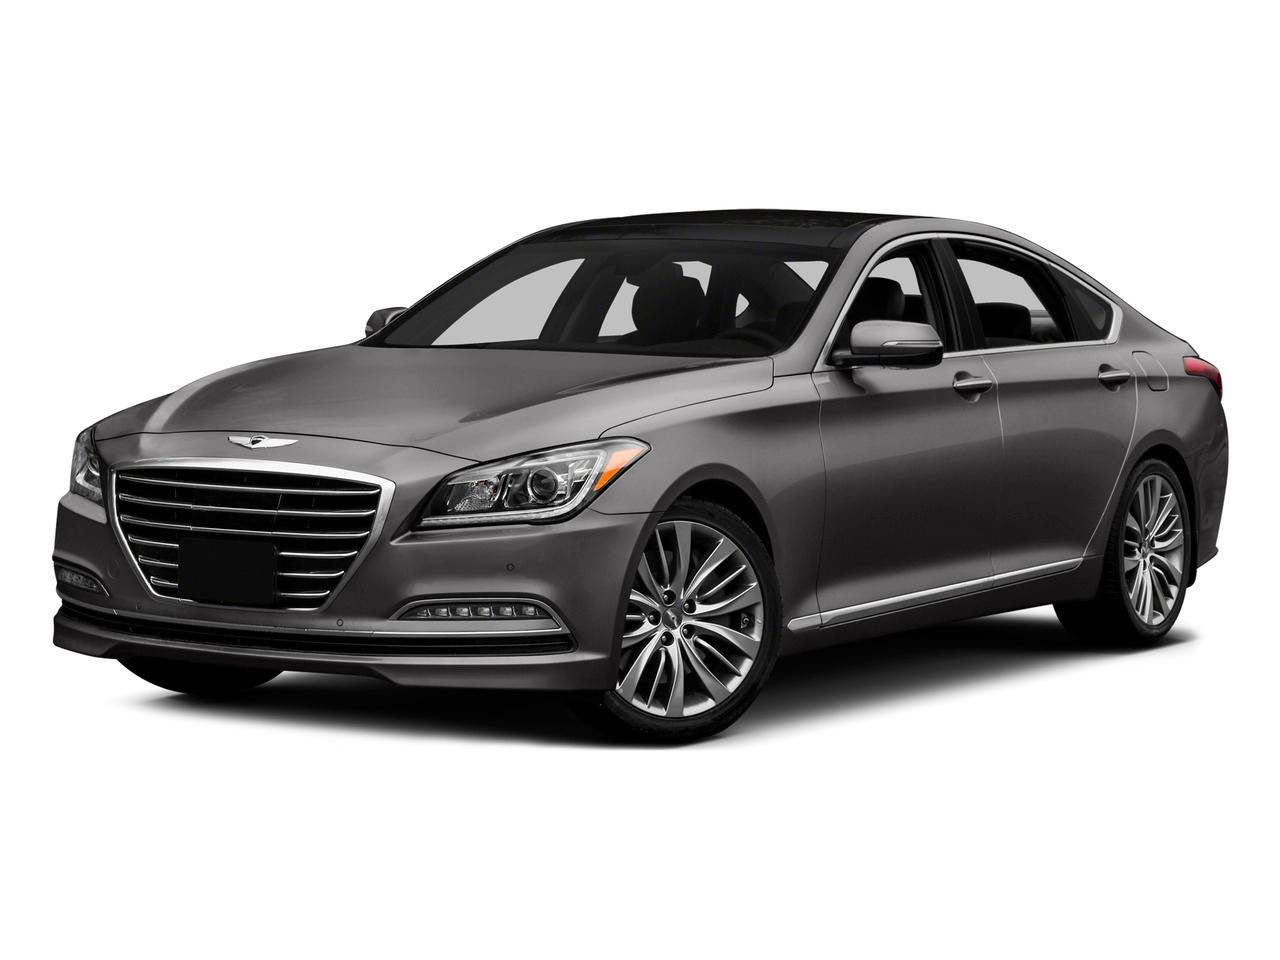 2015 Hyundai Genesis Vehicle Photo in Quakertown, PA 18951